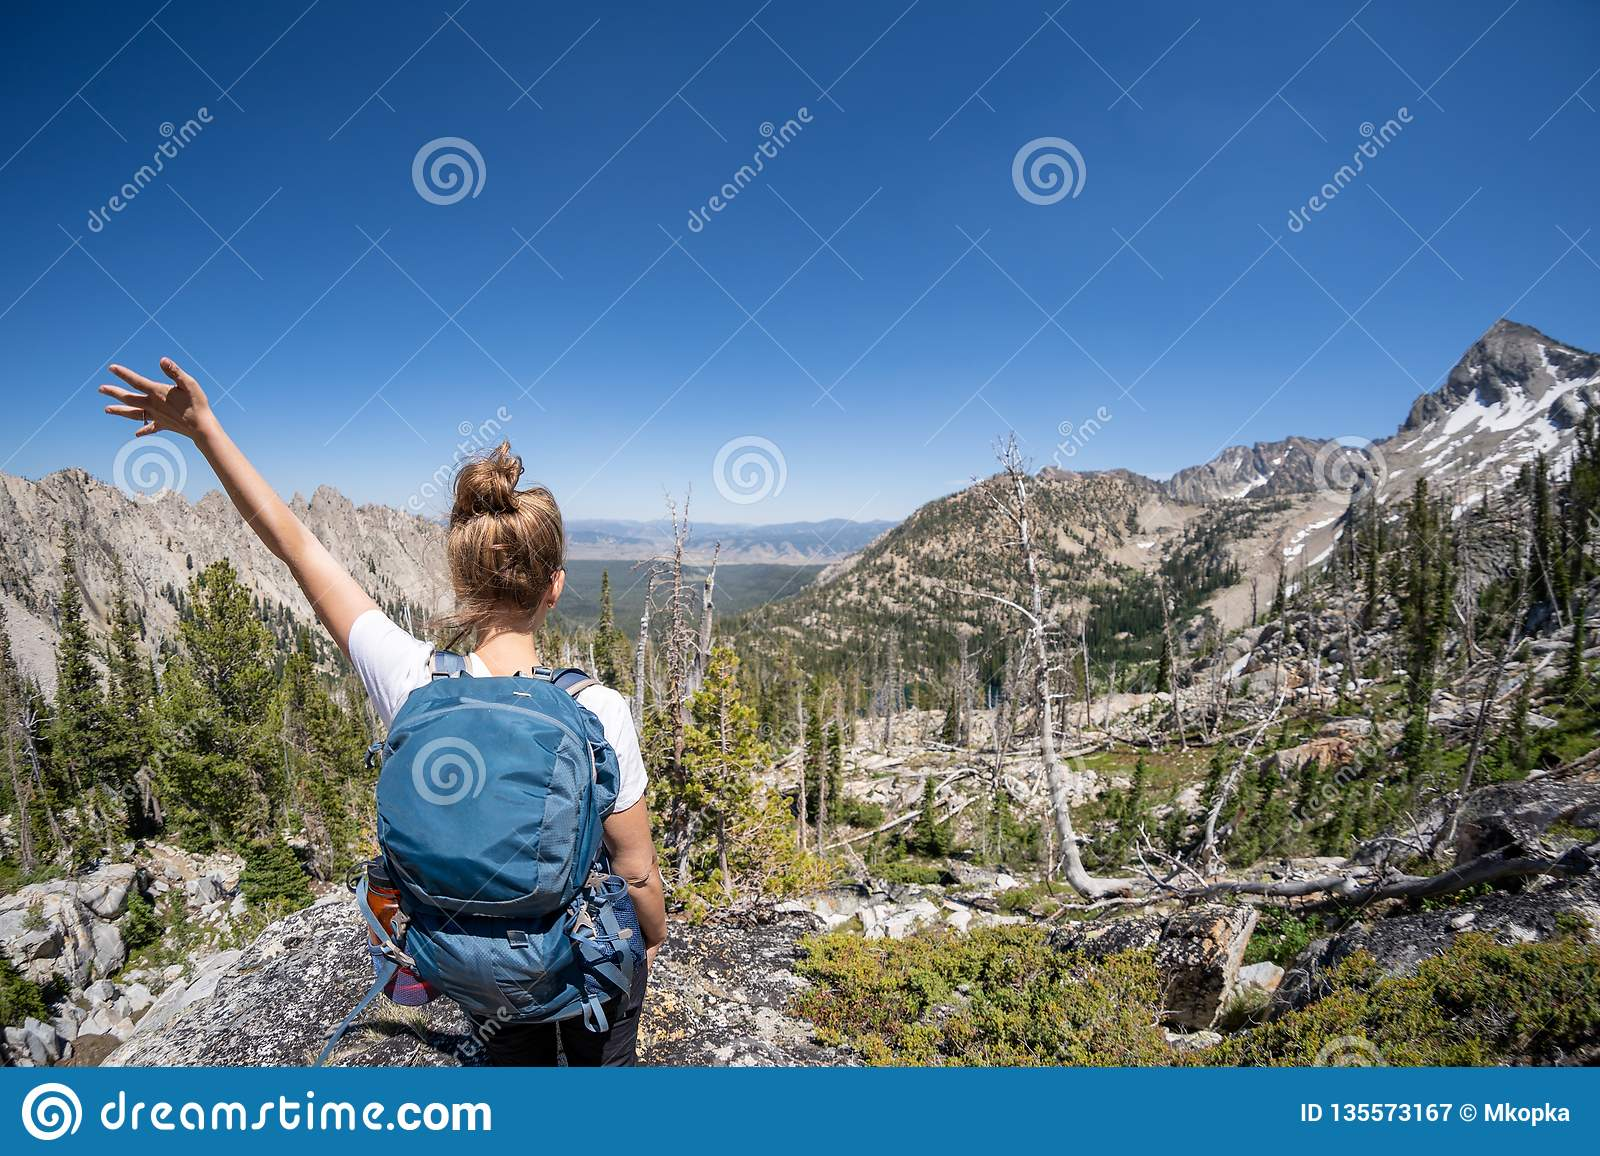 Female hiker with backpack along the Sawtooth Lake trail in Idaho. Back facing camera. Concept for solo female travel and hiking